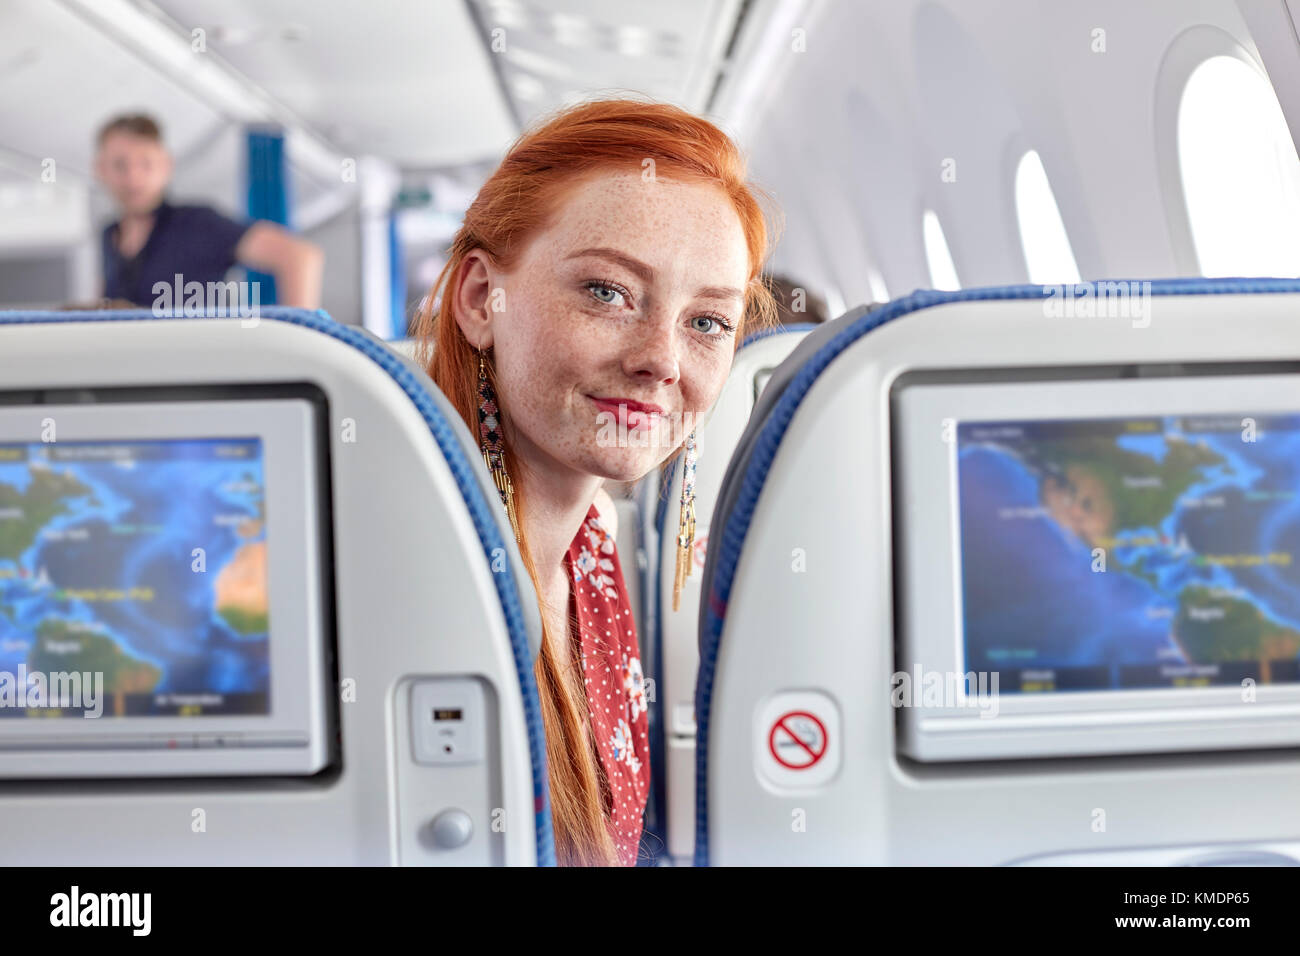 Portrait smiling young woman with red hair and freckles on airplane - Stock Image